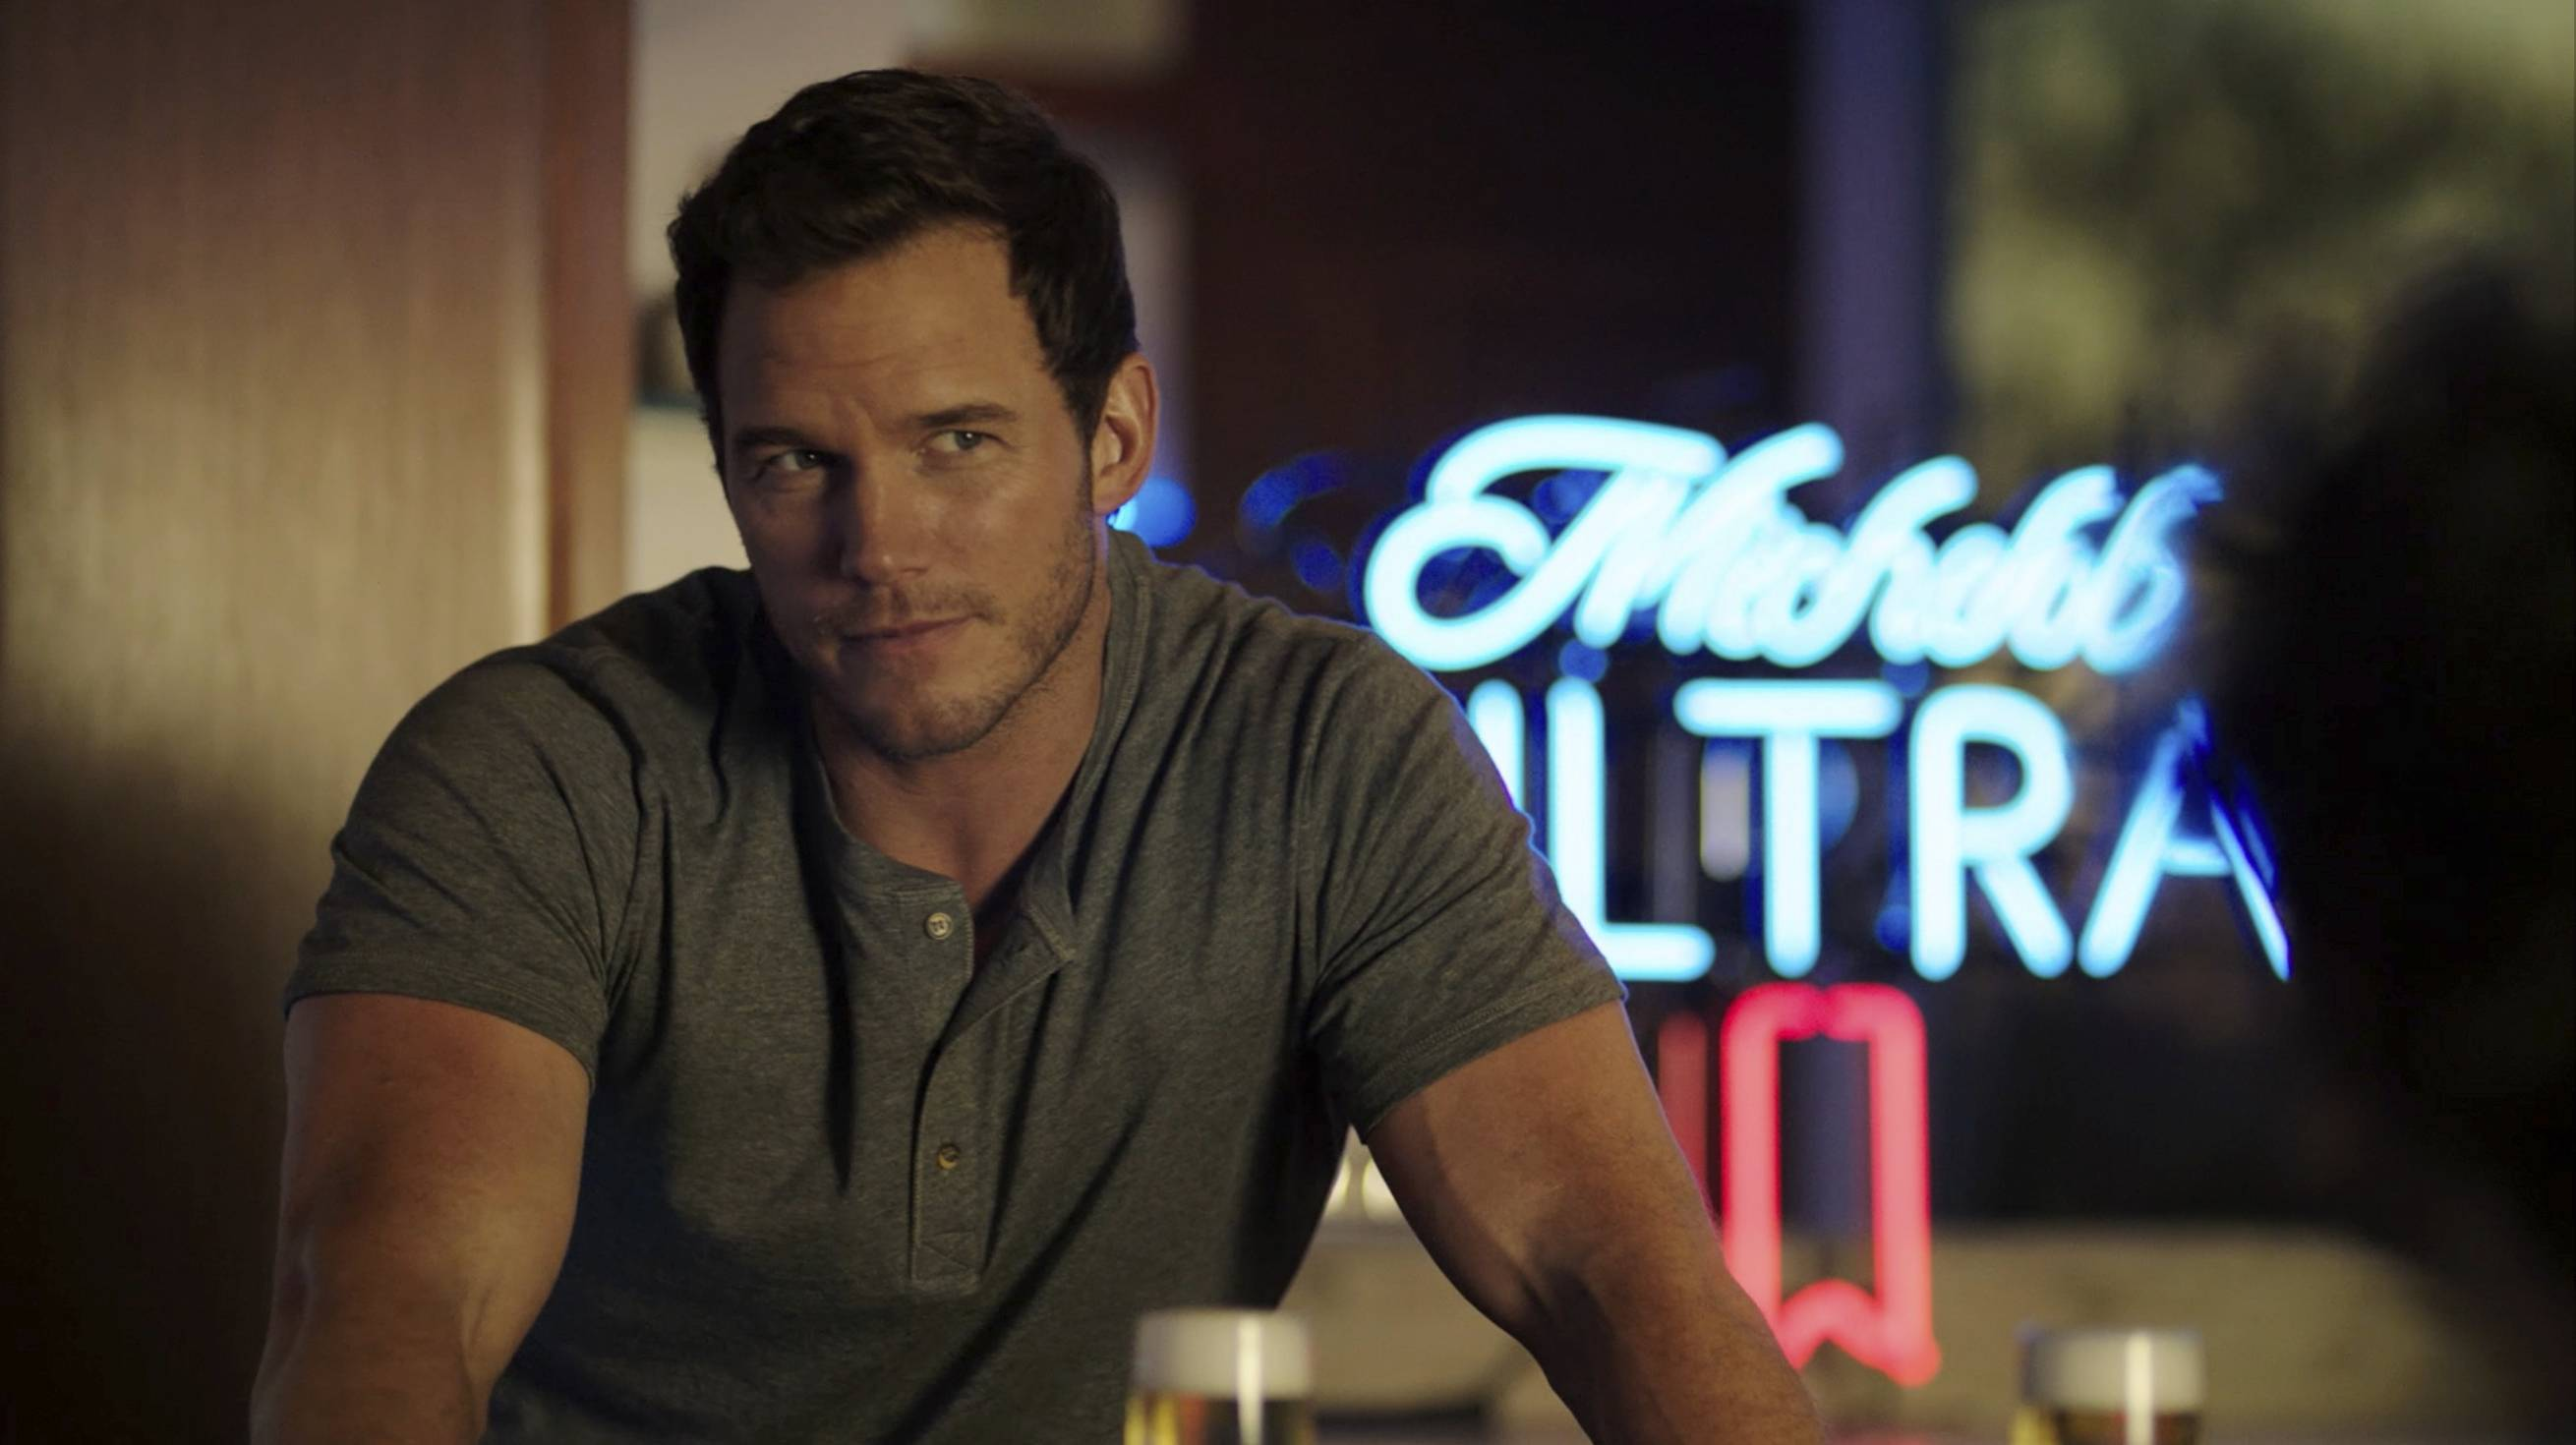 Chris Pratt stars in a Michelob Ultra commercial during the Super Bowl.